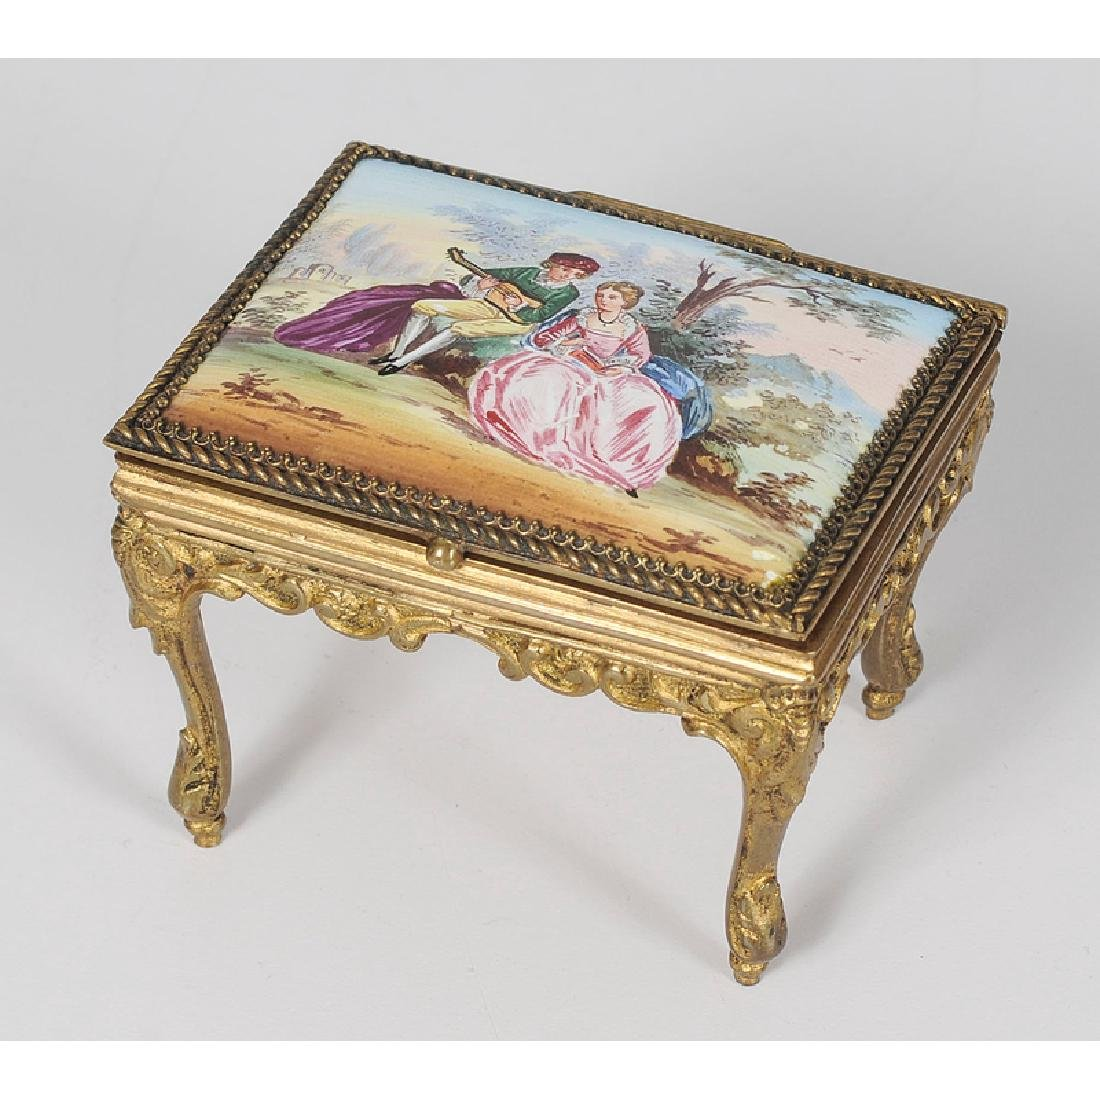 Austrian Accessories Decorated with Enamel Court Scenes - 2